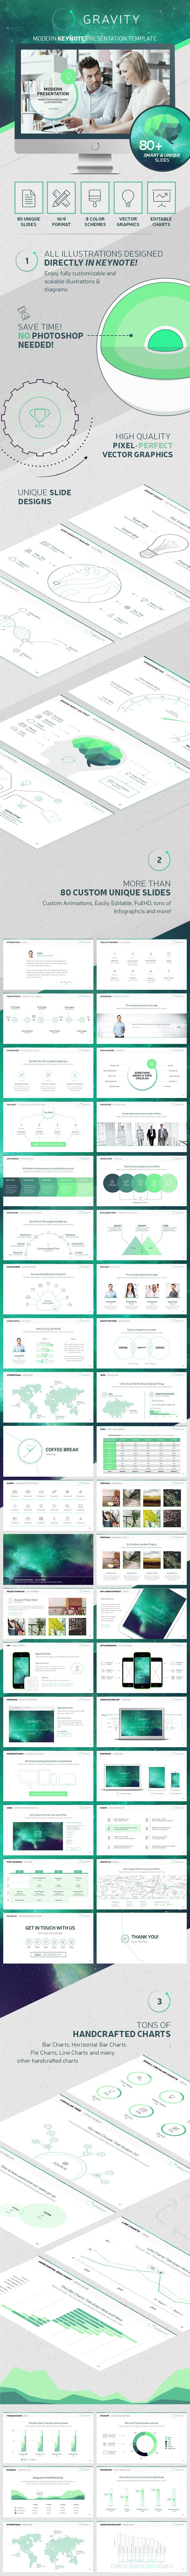 Gravity Keynote - Modern Presentation Template - Keynote Templates Presentation Templates